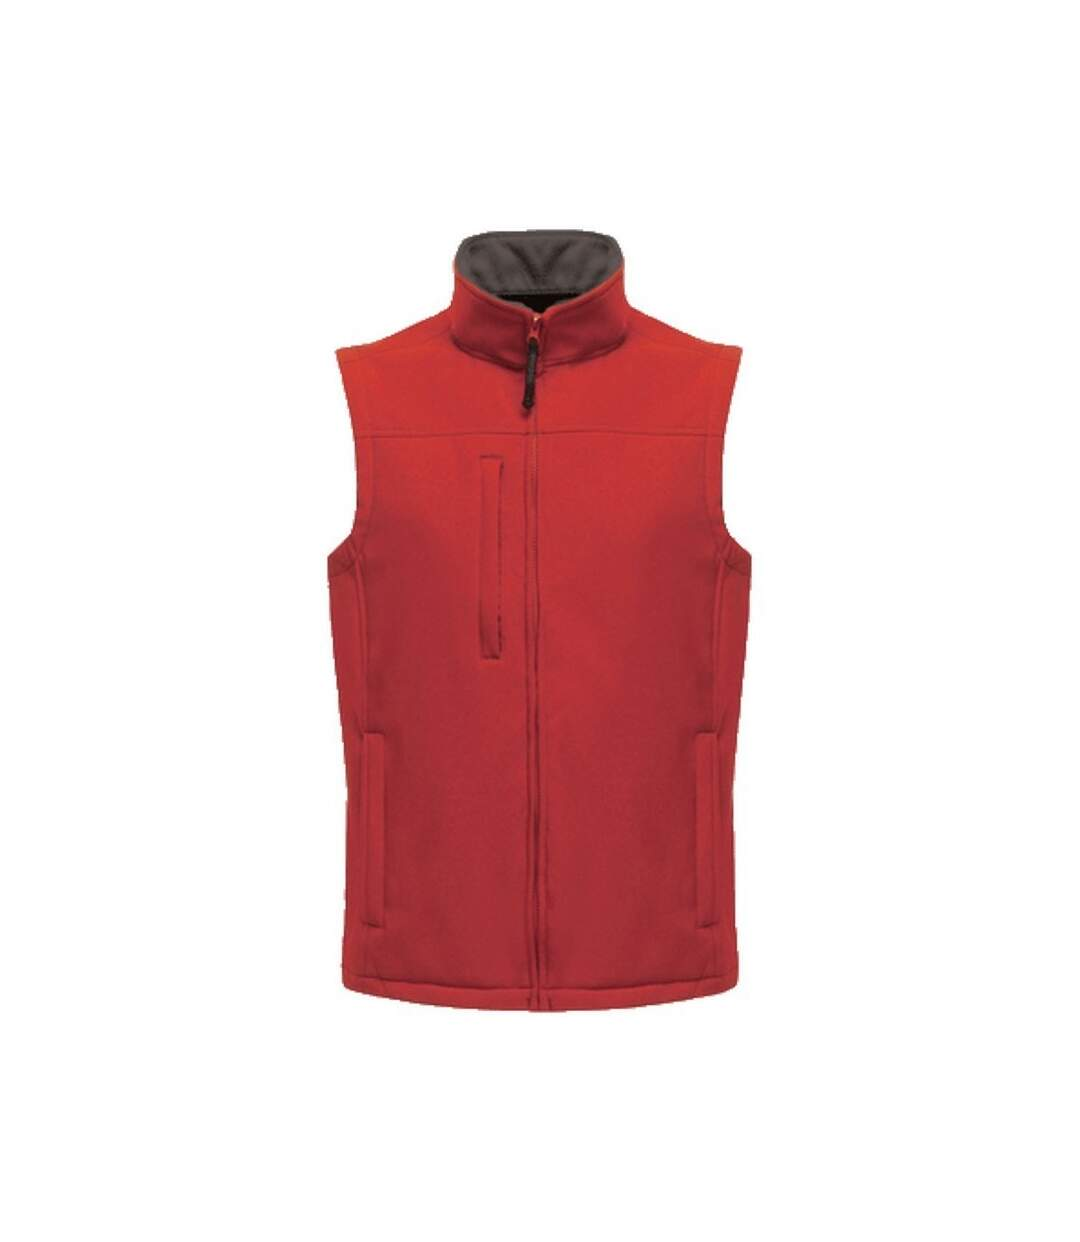 Regatta Mens Flux Softshell Bodywarmer / Sleeveless Jacket Water Repellent And Wind Resistant (Classic Red) - UTRG1493